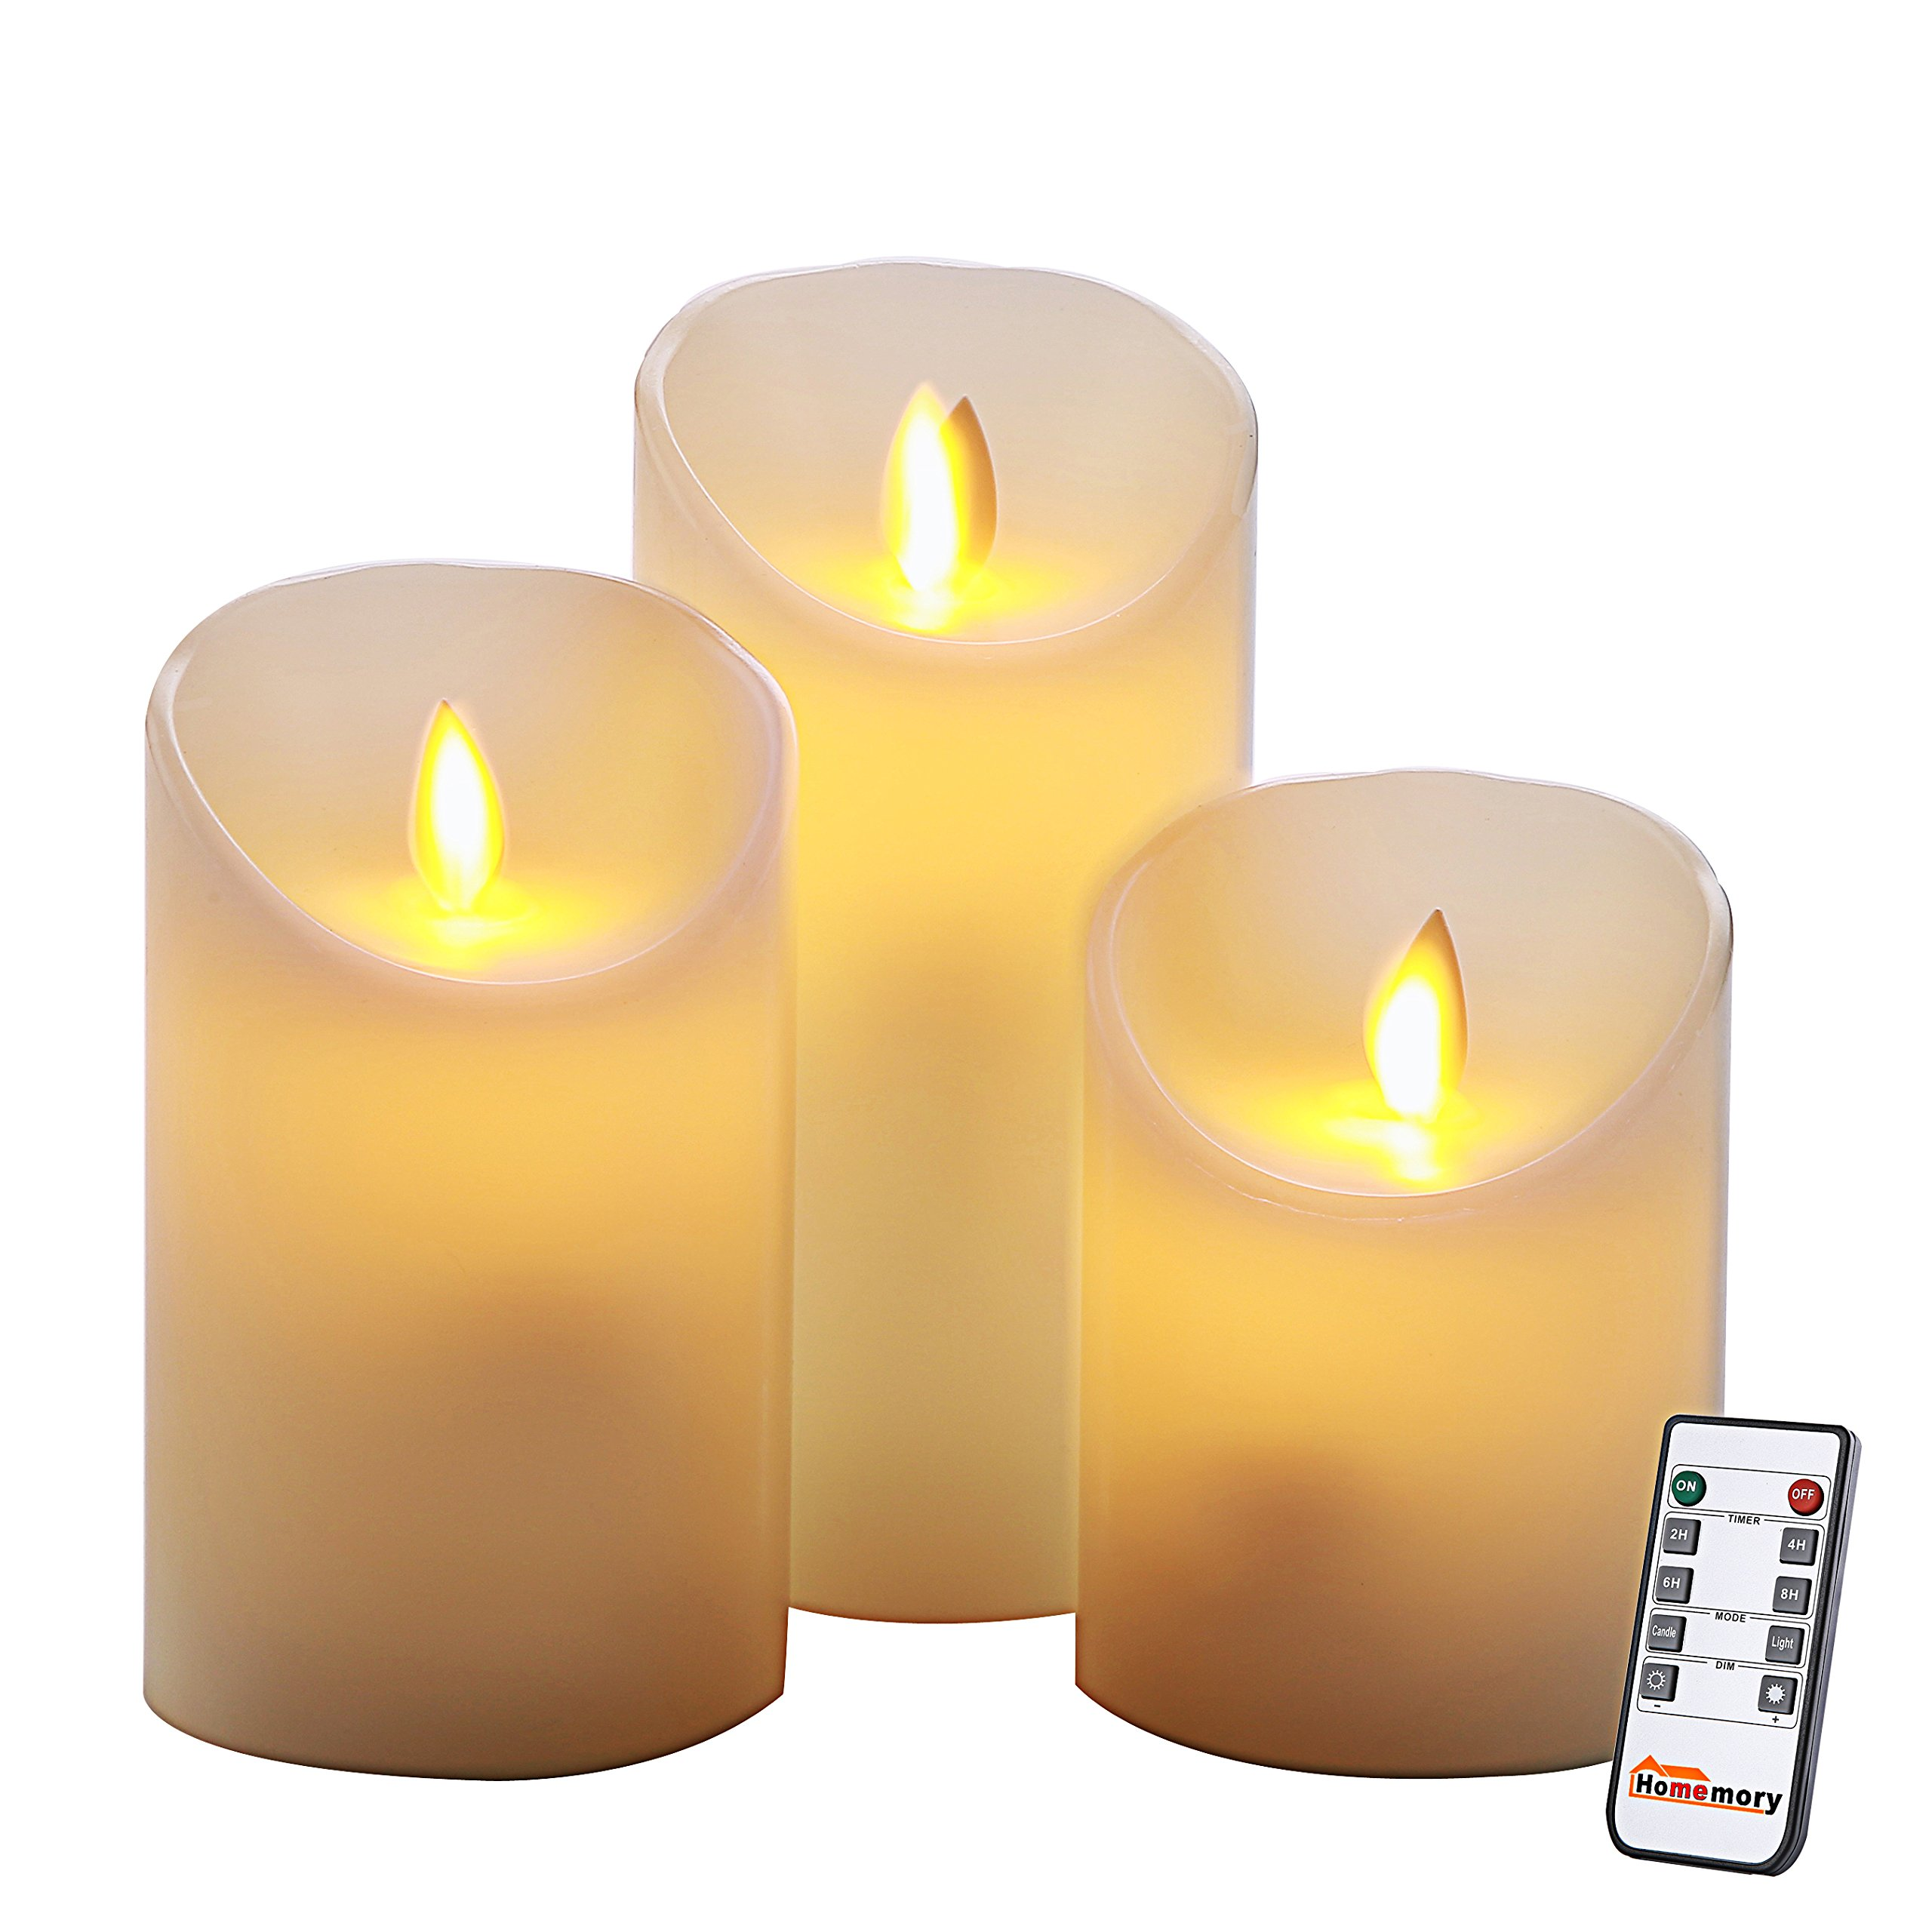 Homemory Realistic Flameless Candle with Remote, Battery Operated LED Pillar Timer Candle, Set of 3 Ivory Wax Electric Candle with Flickering Flame for Table, Wall Sconce, Spa, Bathroom by Homemory